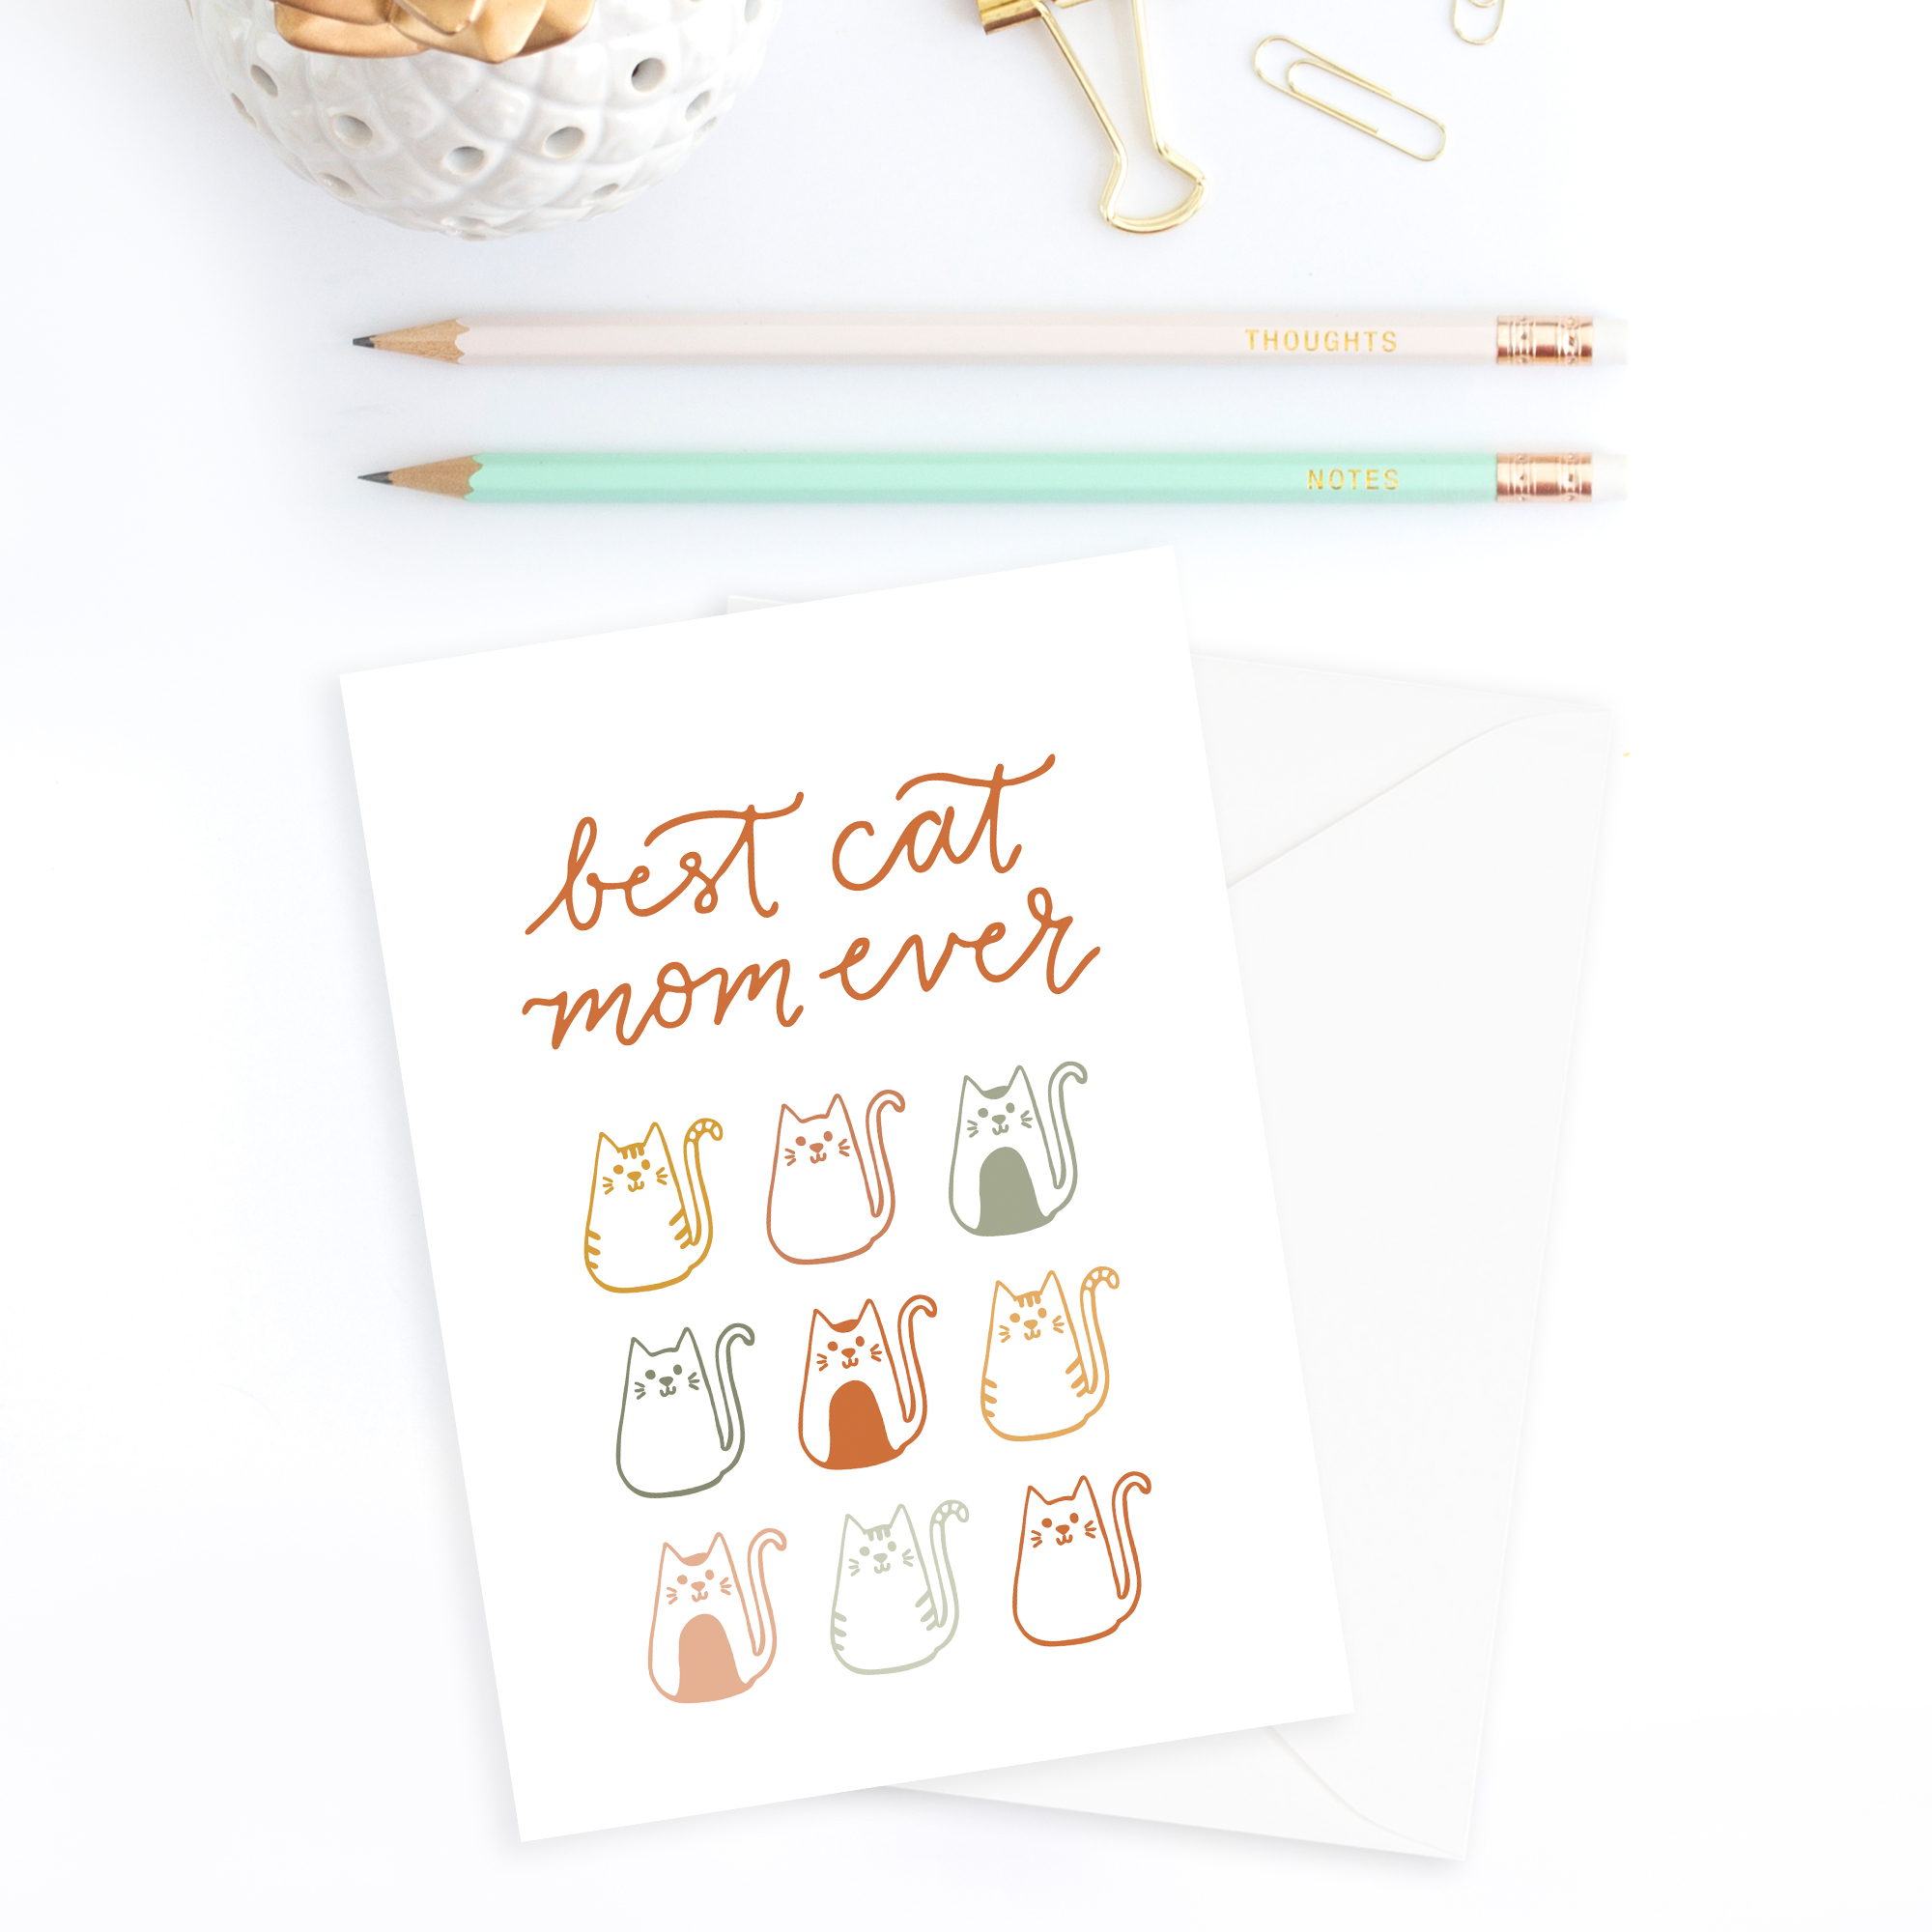 Best cat mom ever greeting card on a white background with office supplies surrounding the card